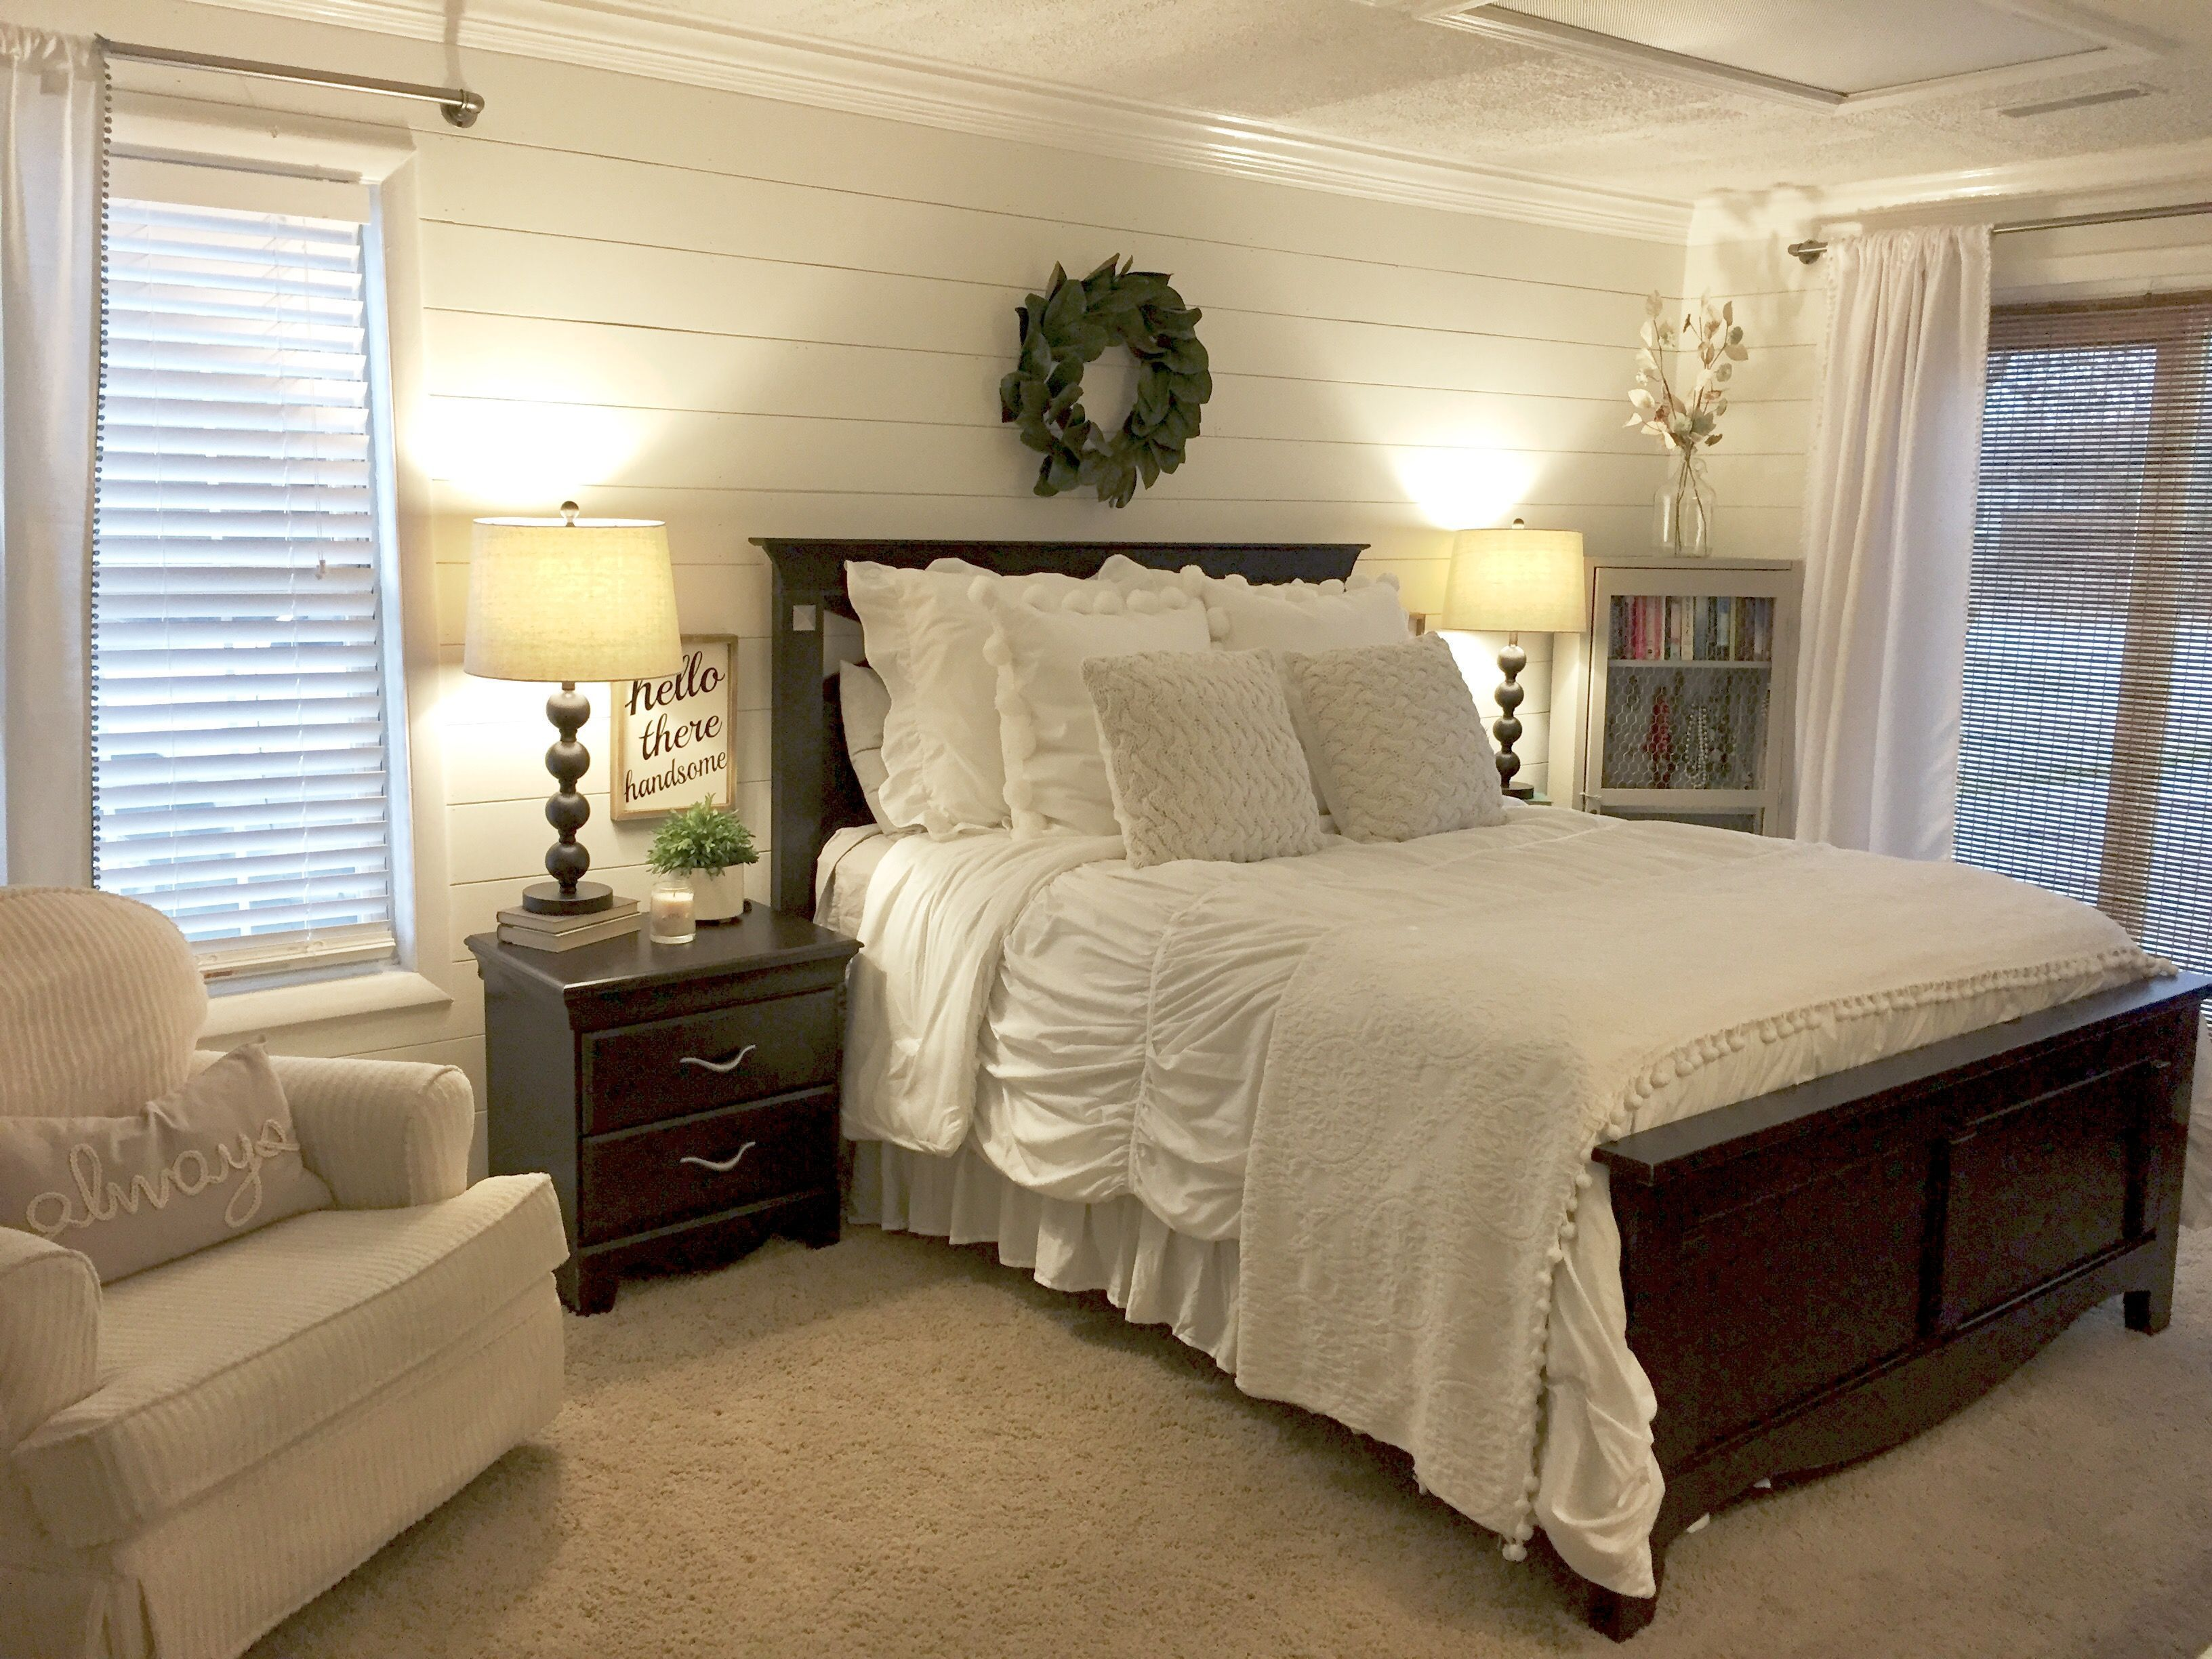 Best Shiplap Bedroom Walls With Farmhouse Charm Magnolia Wreath And Alabaster White Paint 400 x 300